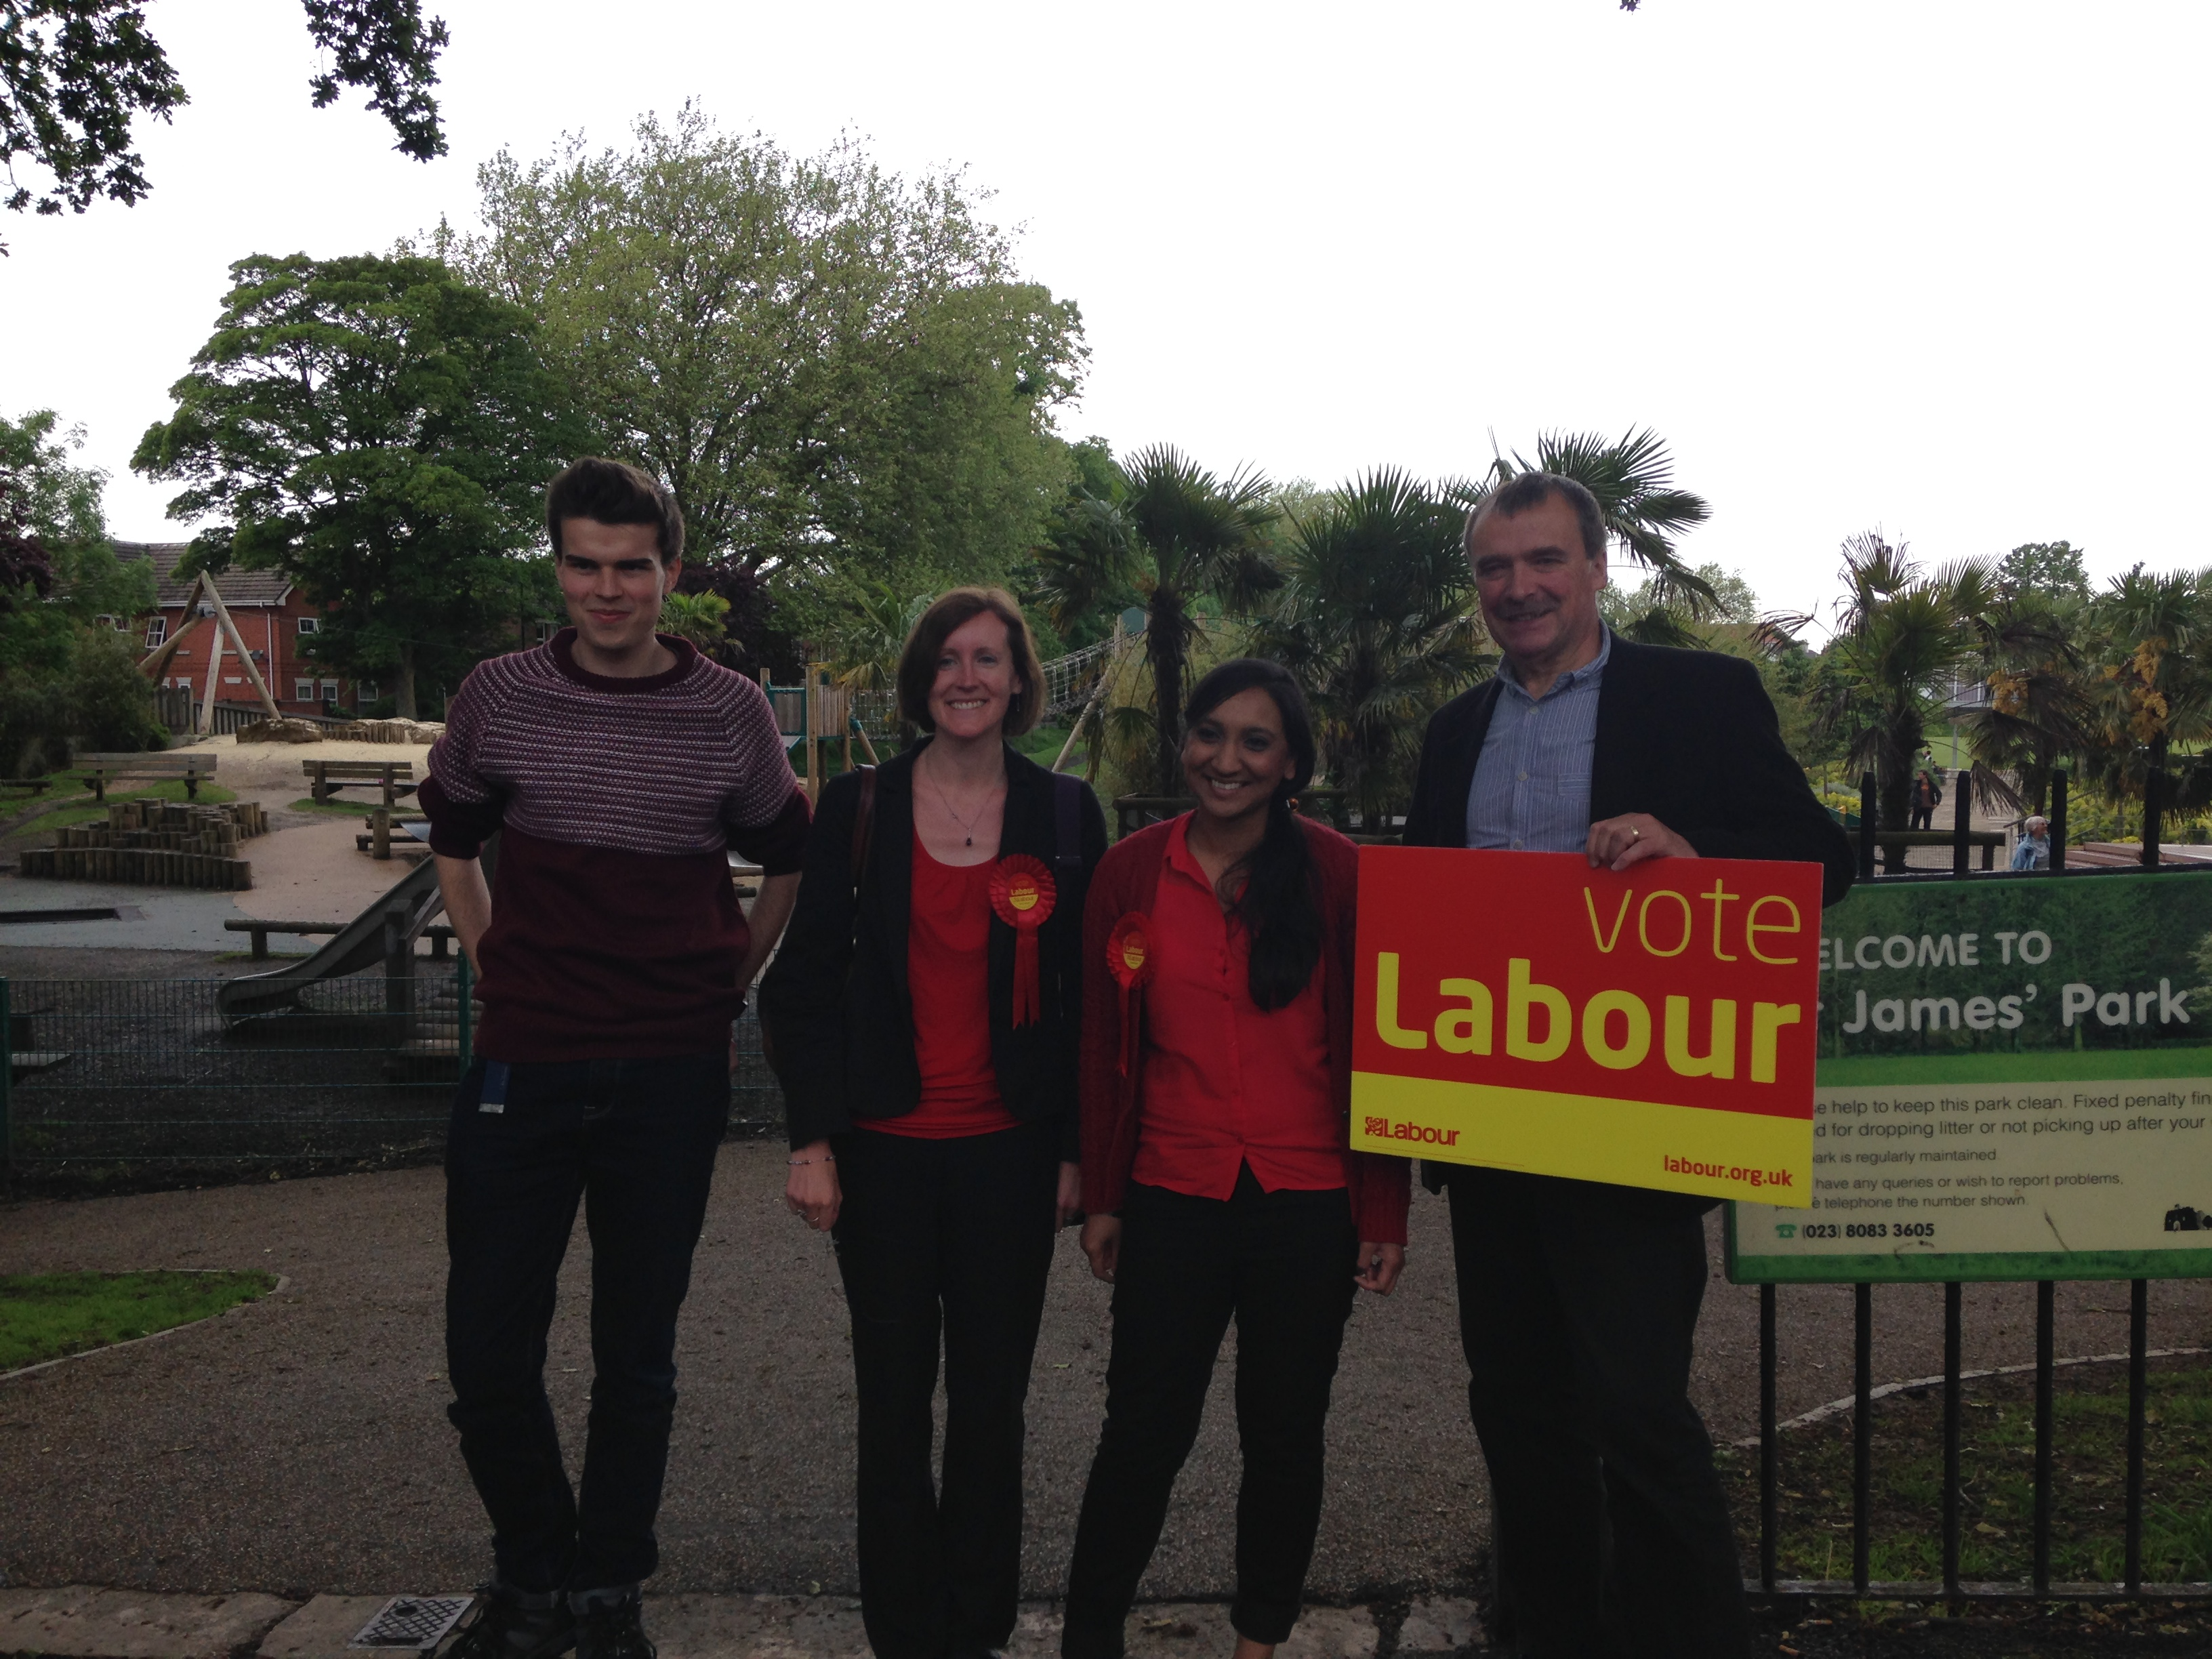 Taking part in some last min doorknocking on Thursday